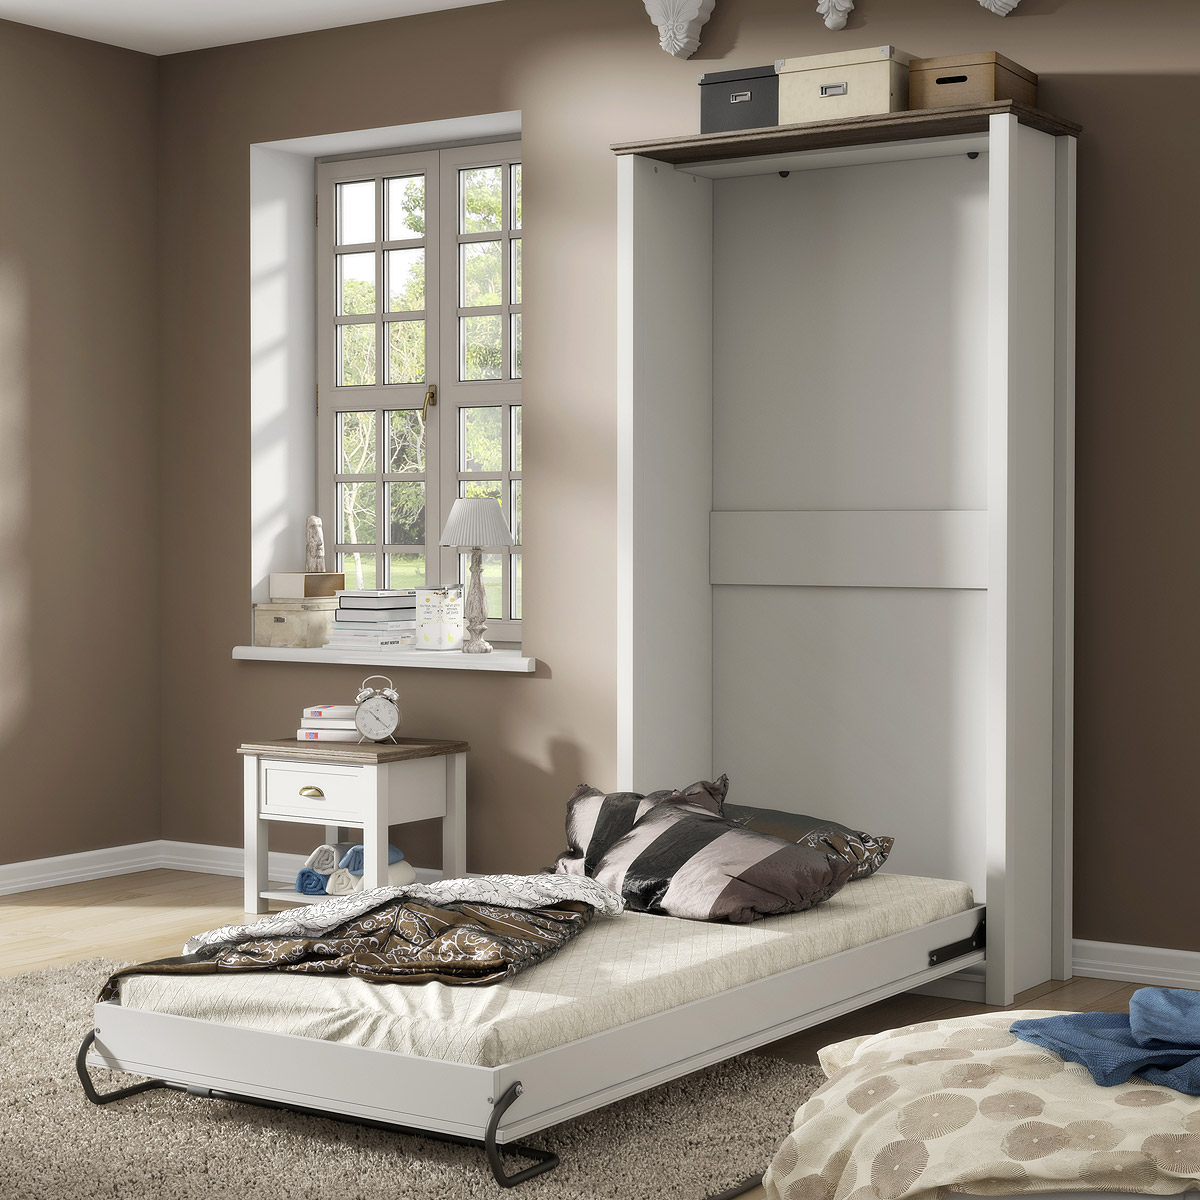 klappbett chateau bett einzellbett schrankbett wei san remo eiche 90x200 ebay. Black Bedroom Furniture Sets. Home Design Ideas